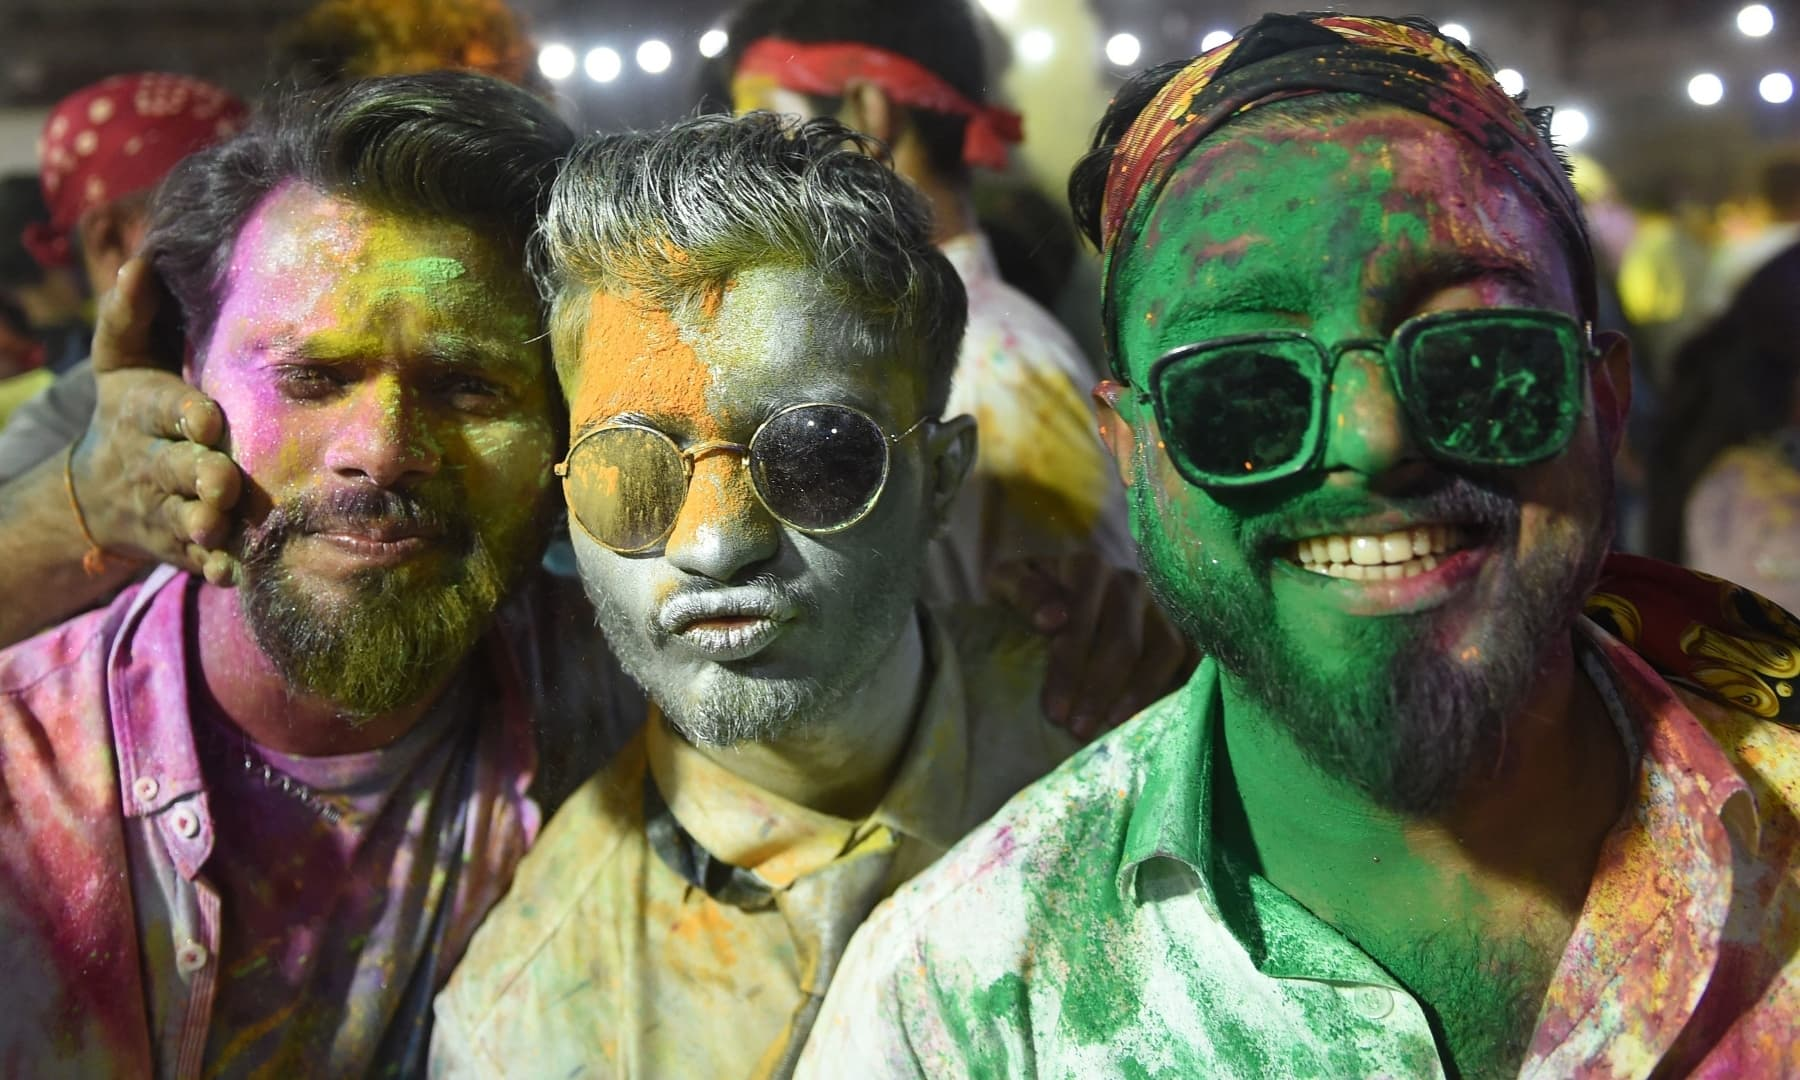 Revellers play with 'Gulal', a coloured powder used in Holi celebrations, in Karachi on March 28. — AFP